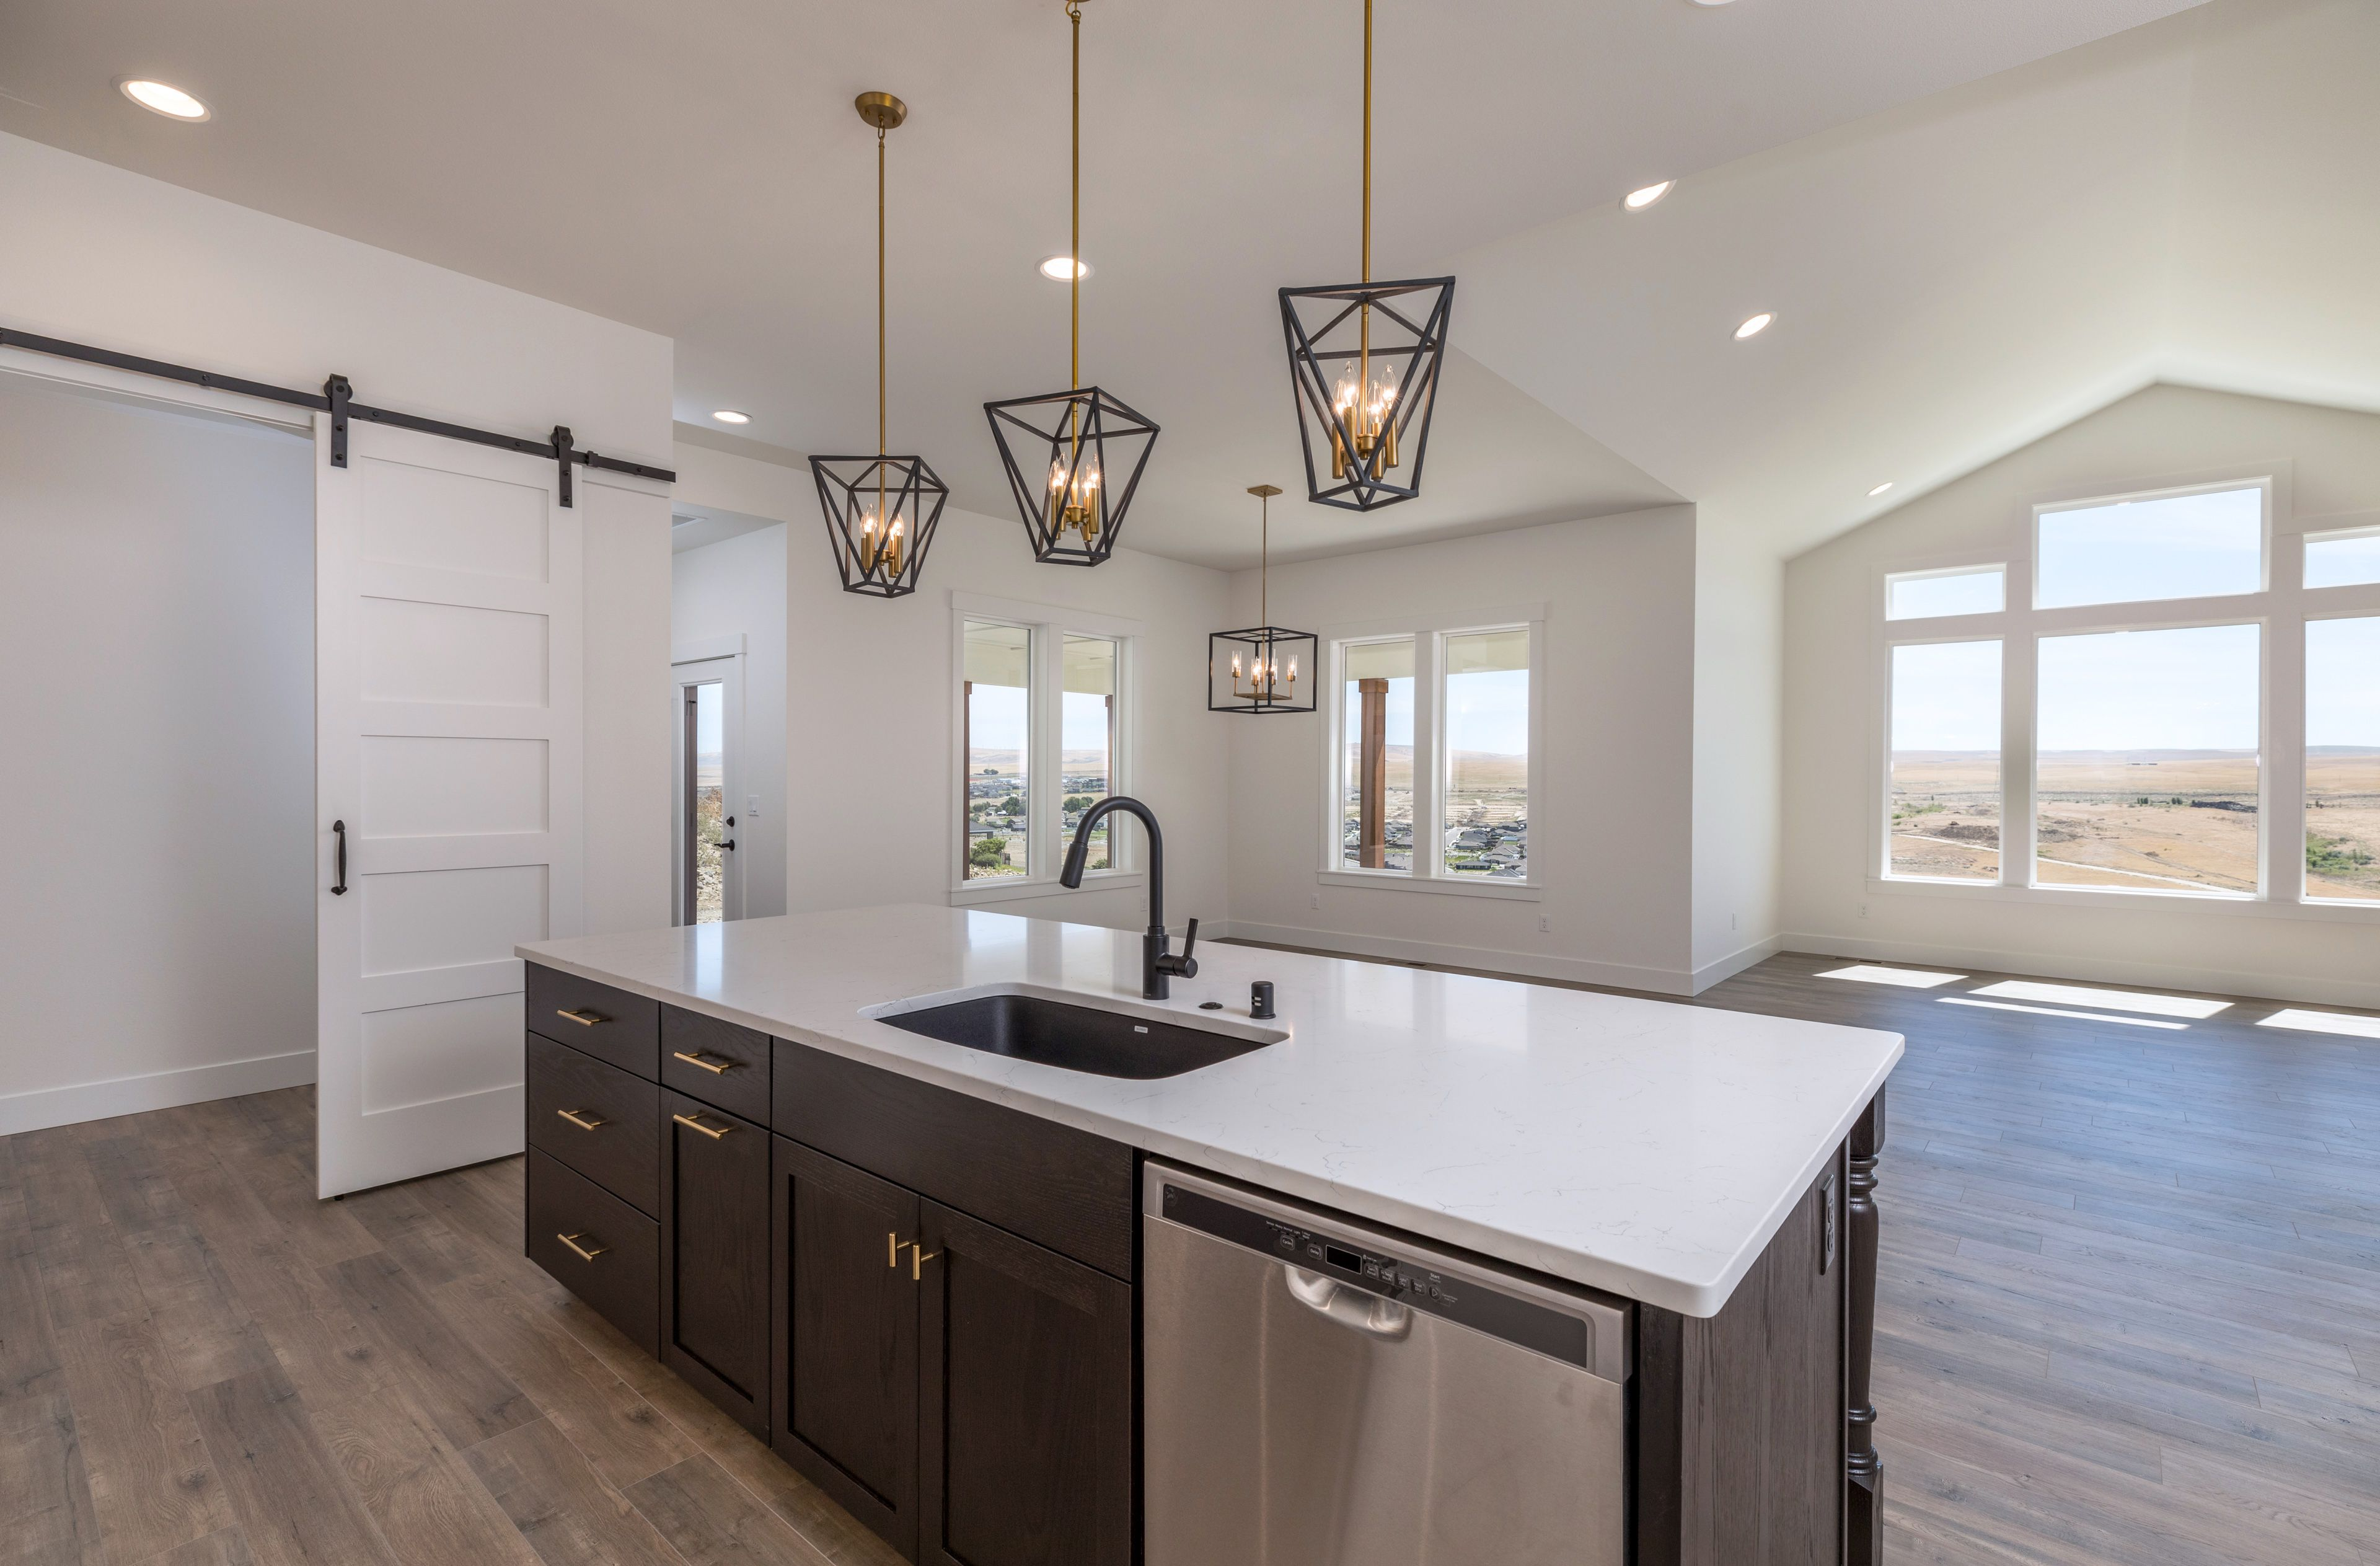 Kitchen featured in the LOT 13 The Chloe#2 By Gretl Crawford Homes in Richland, WA